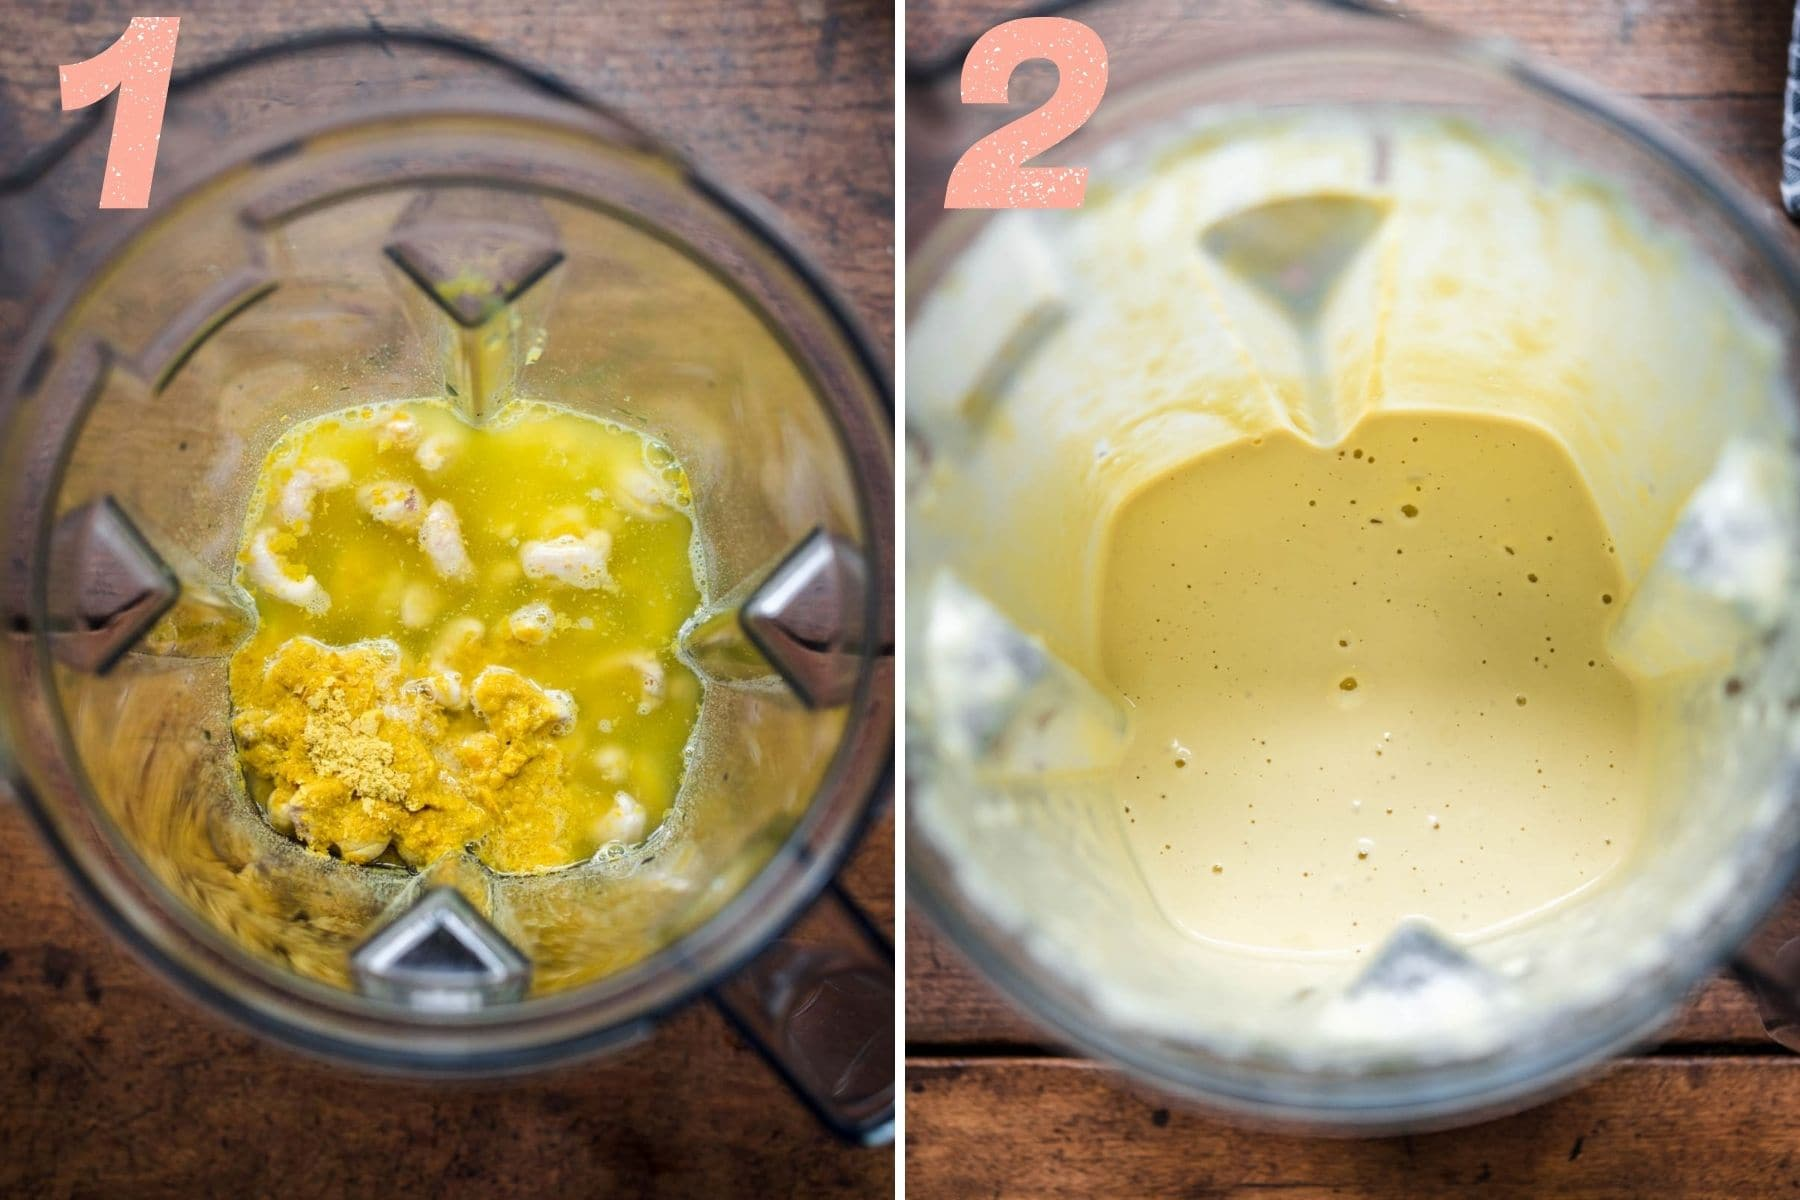 On the left: alfredo sauce ingredients in a blender. On the right: alfredo sauce after being blended.